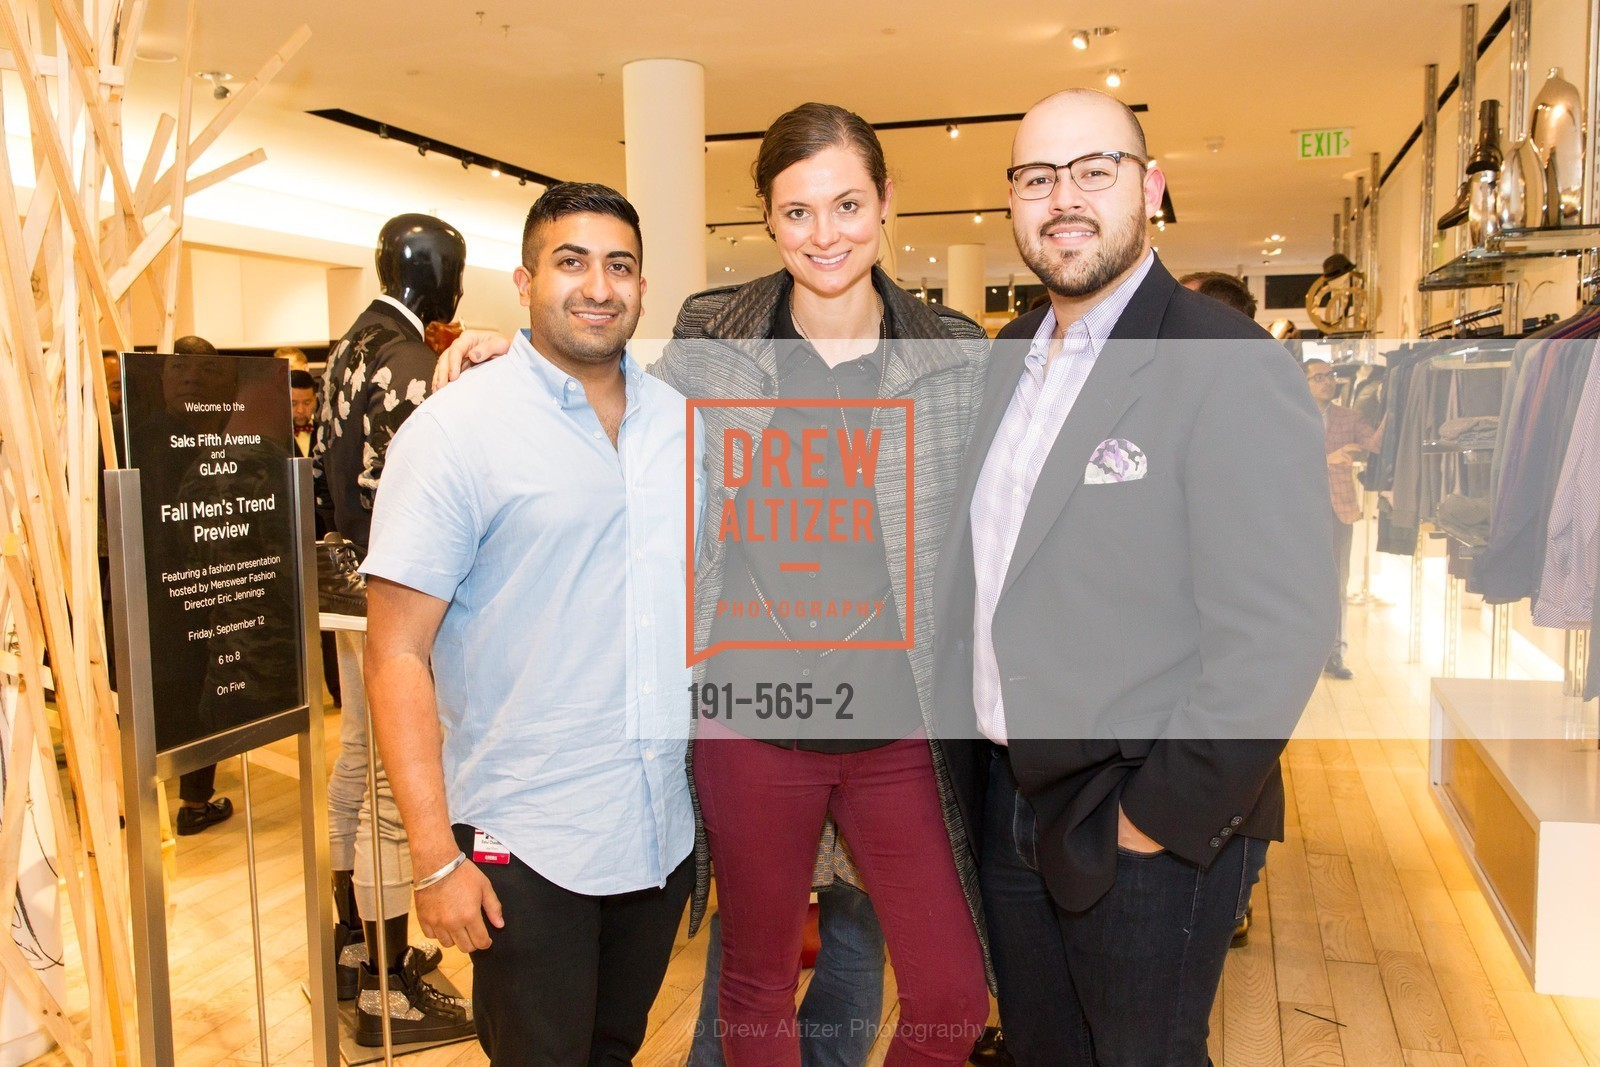 Rahul Chandhok, Lauren Dowling, Amhir Hidalgo, GLAAD GALA Kick-Off Party Hosted by SAKS FIFTH AVENUE, Saks Fifth Avenue. 384 Post Street, September 12th, 2014,Drew Altizer, Drew Altizer Photography, full-service agency, private events, San Francisco photographer, photographer california